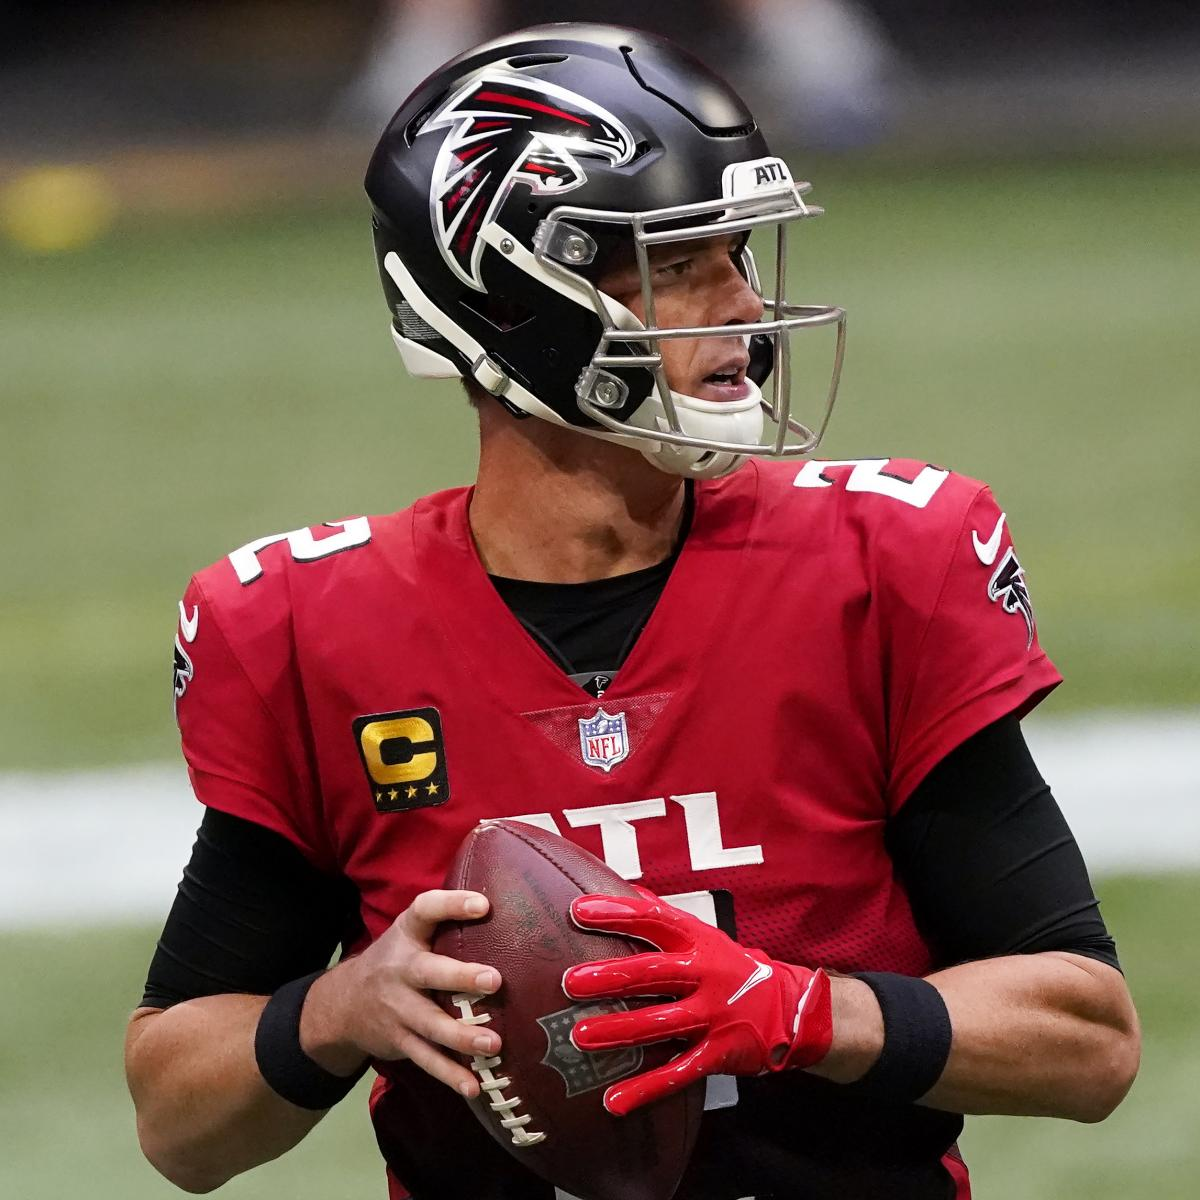 Matt Ryan Discusses Trade Rumors Amid Falcons Struggles: 'I Want to Be Here'